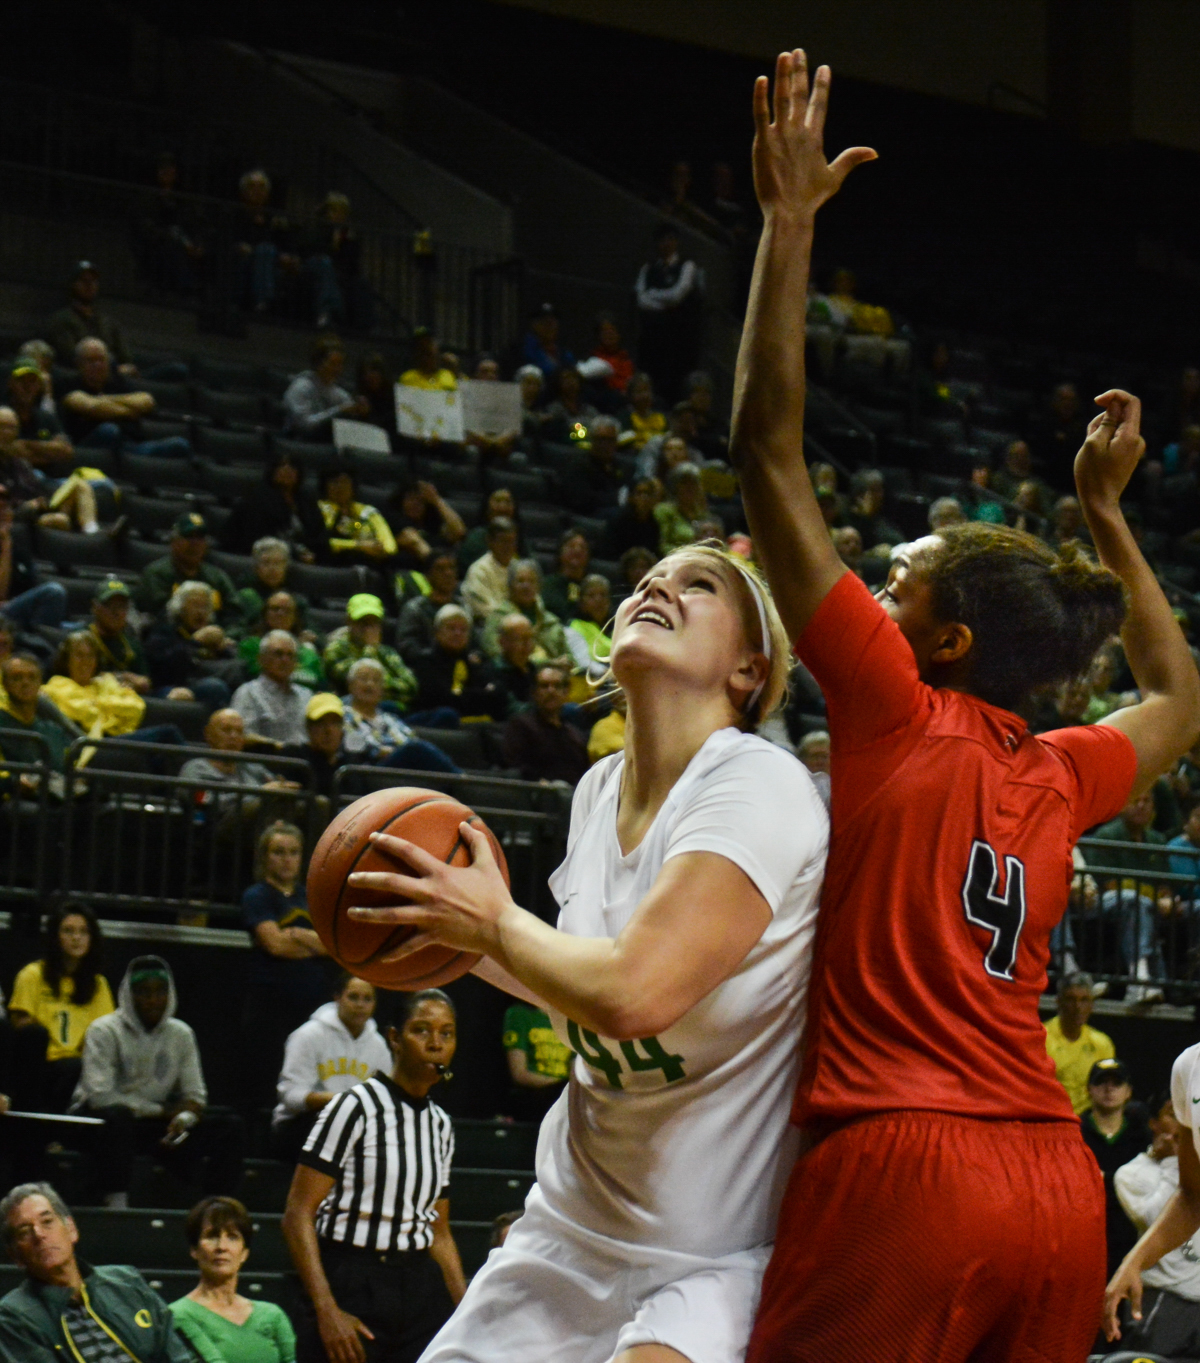 Ducks Mallory McGwire (#44) drives to the hoop against Cardinals point guiard Briana Laidler (#4). The Oregon Ducks women's basketball team won their season opener against the Lamar Cardinals 84-67. Photo by Jacob Smith, Oregon News Lab